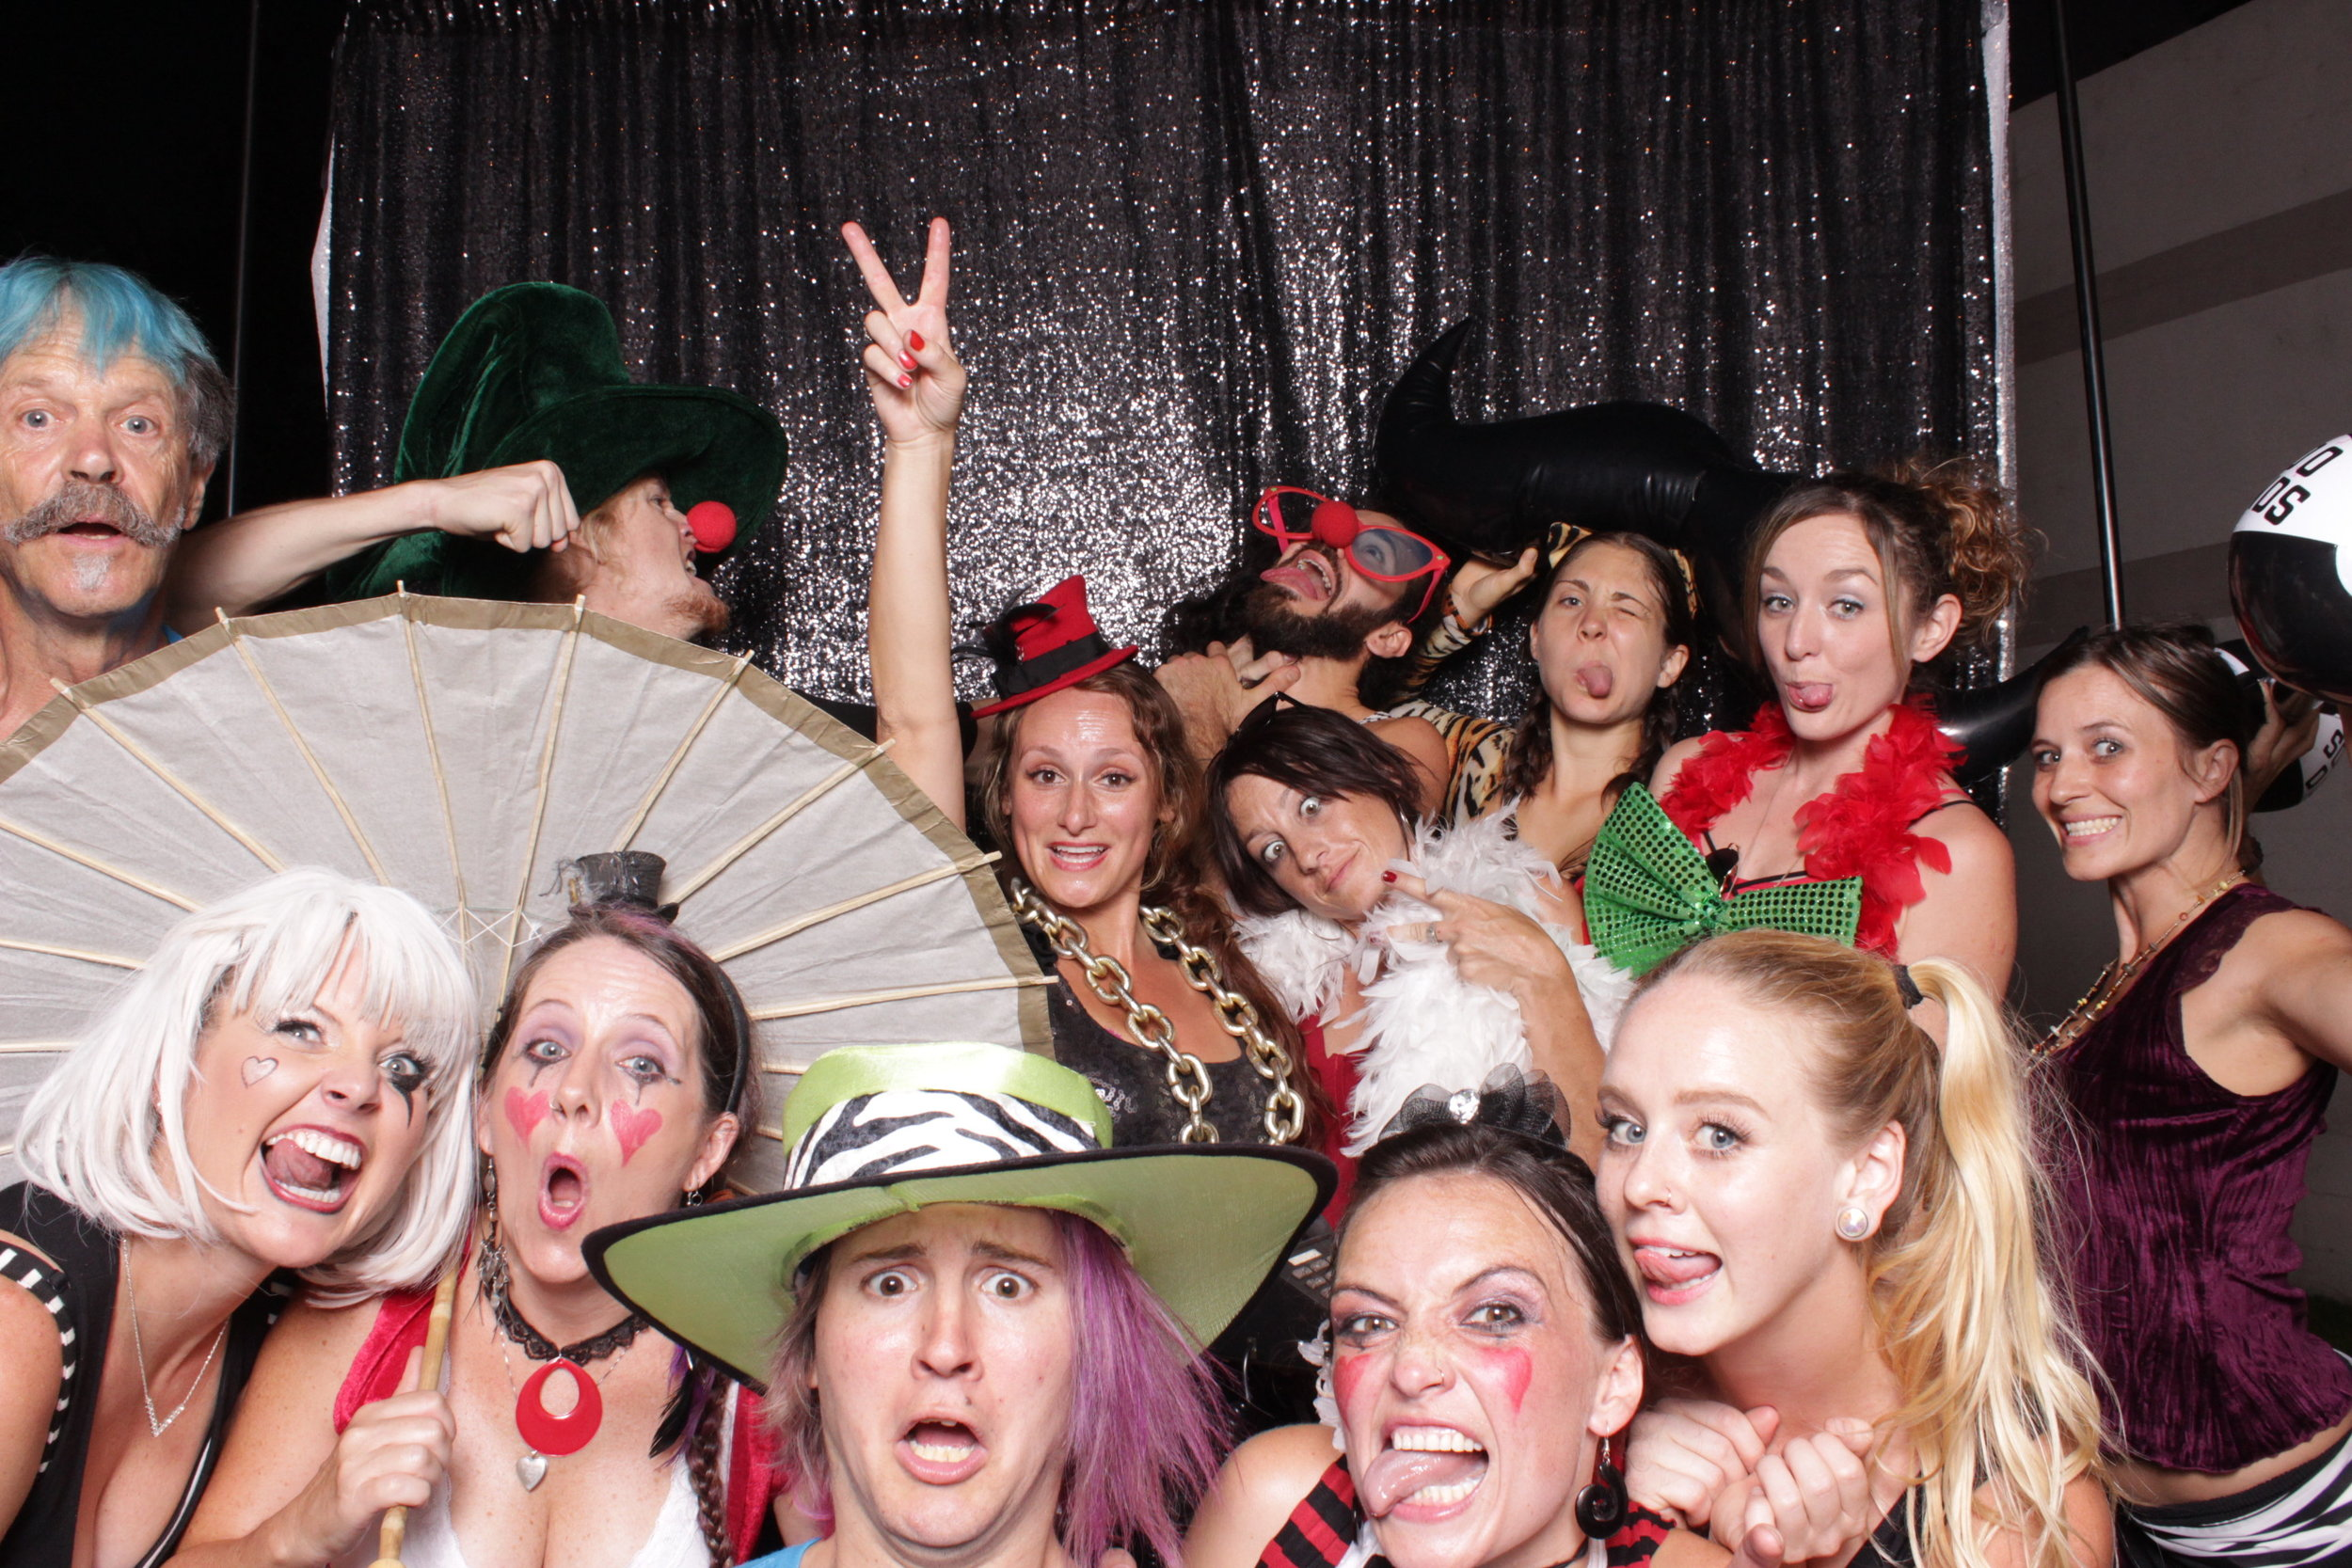 build-corporate-party-photo-booth-rental-group-shot